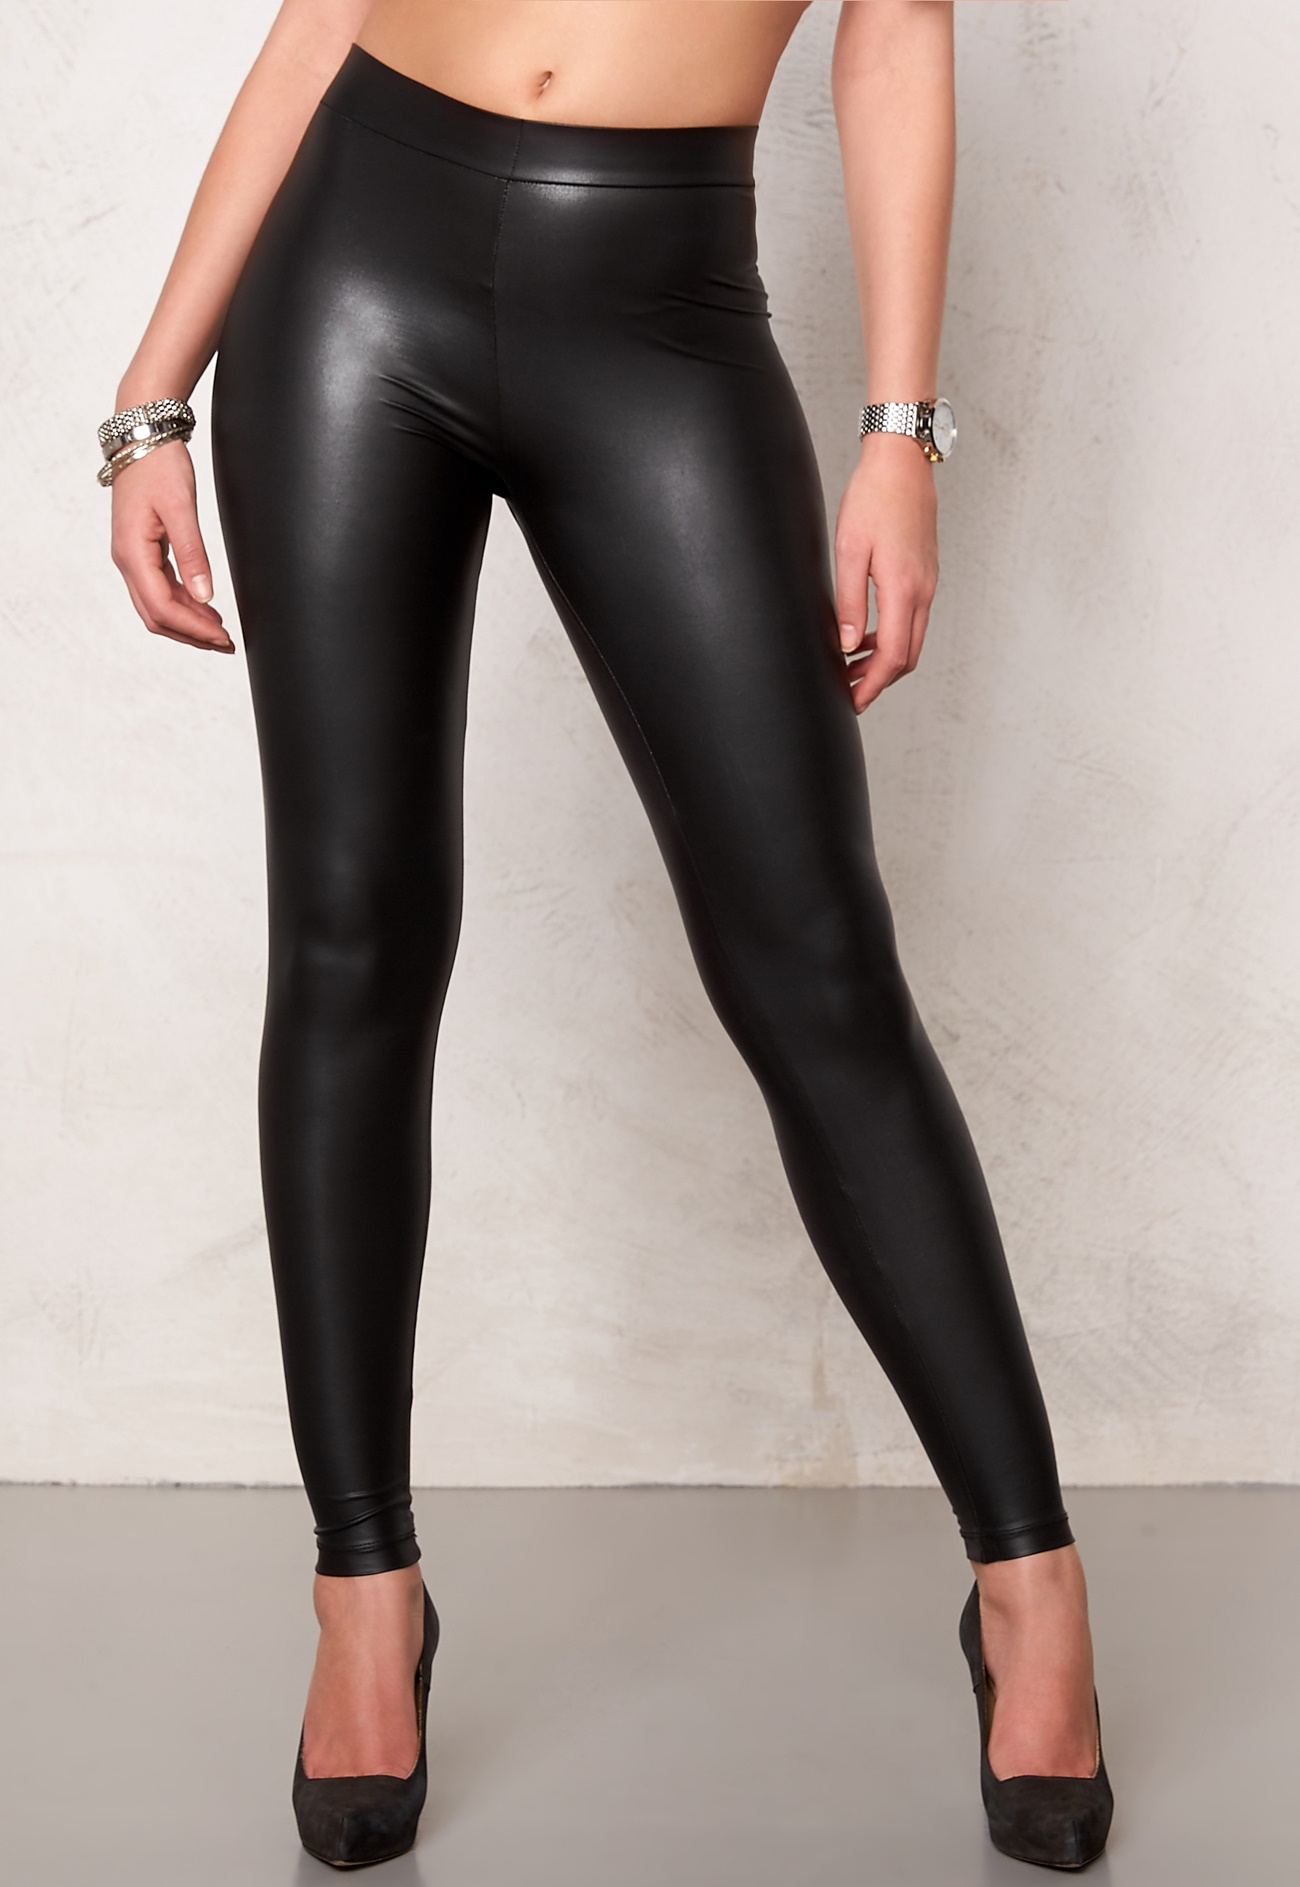 Shop for black leggings women online at Target. Free shipping on purchases over $35 and save 5% every day with your Target REDcard.